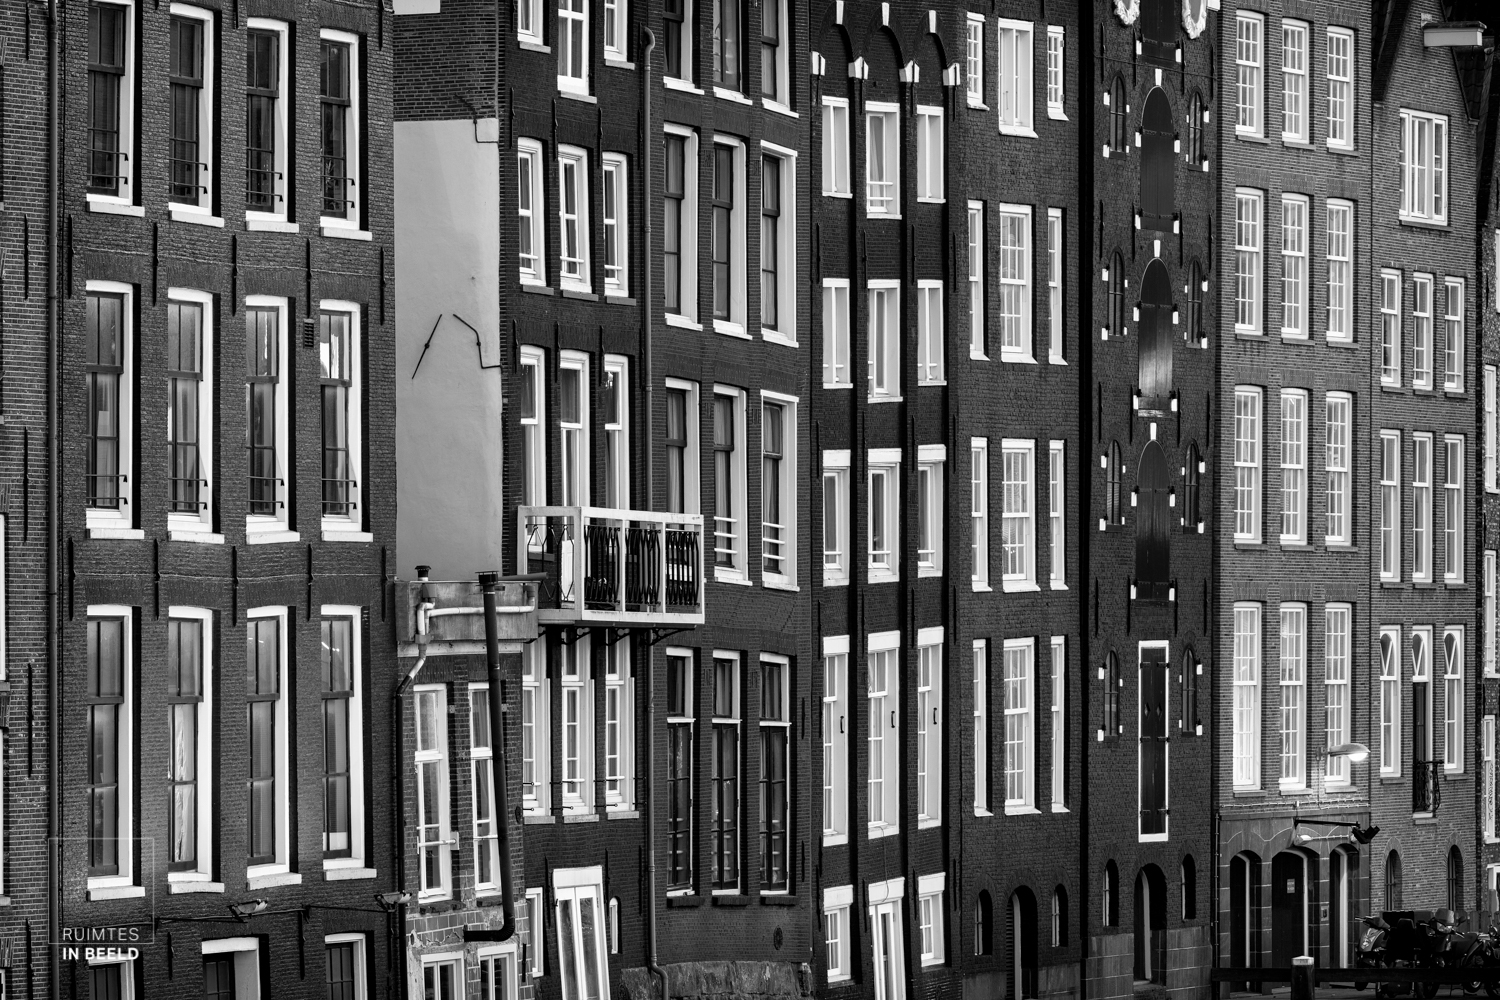 Herenhuizen in Amsterdam, in zwart wit | Quaint houses in Amsterdam, Netherlands, in black and white